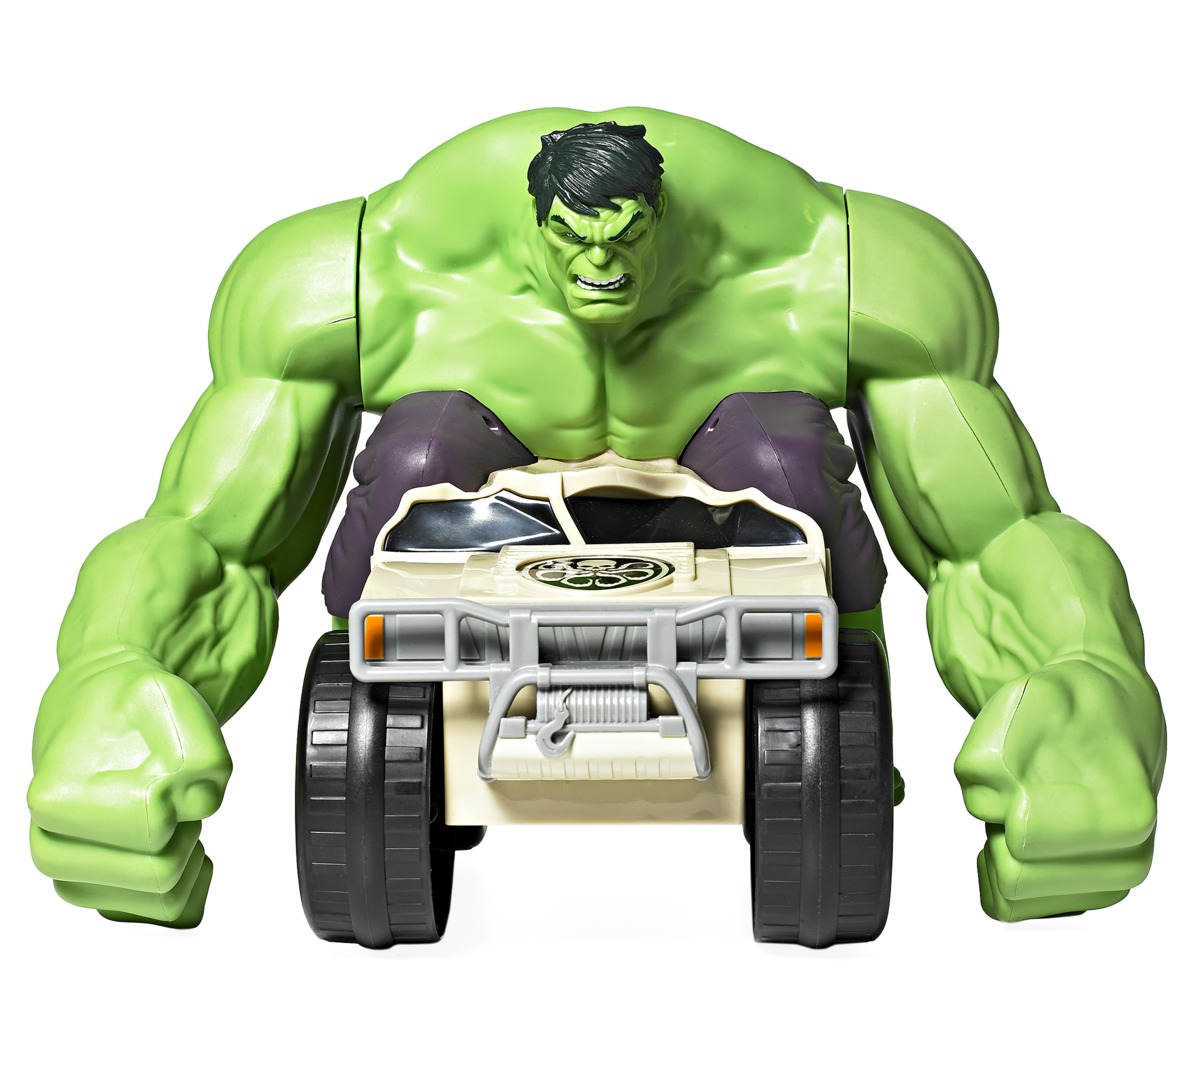 Jakks Pacific Hulk Smash